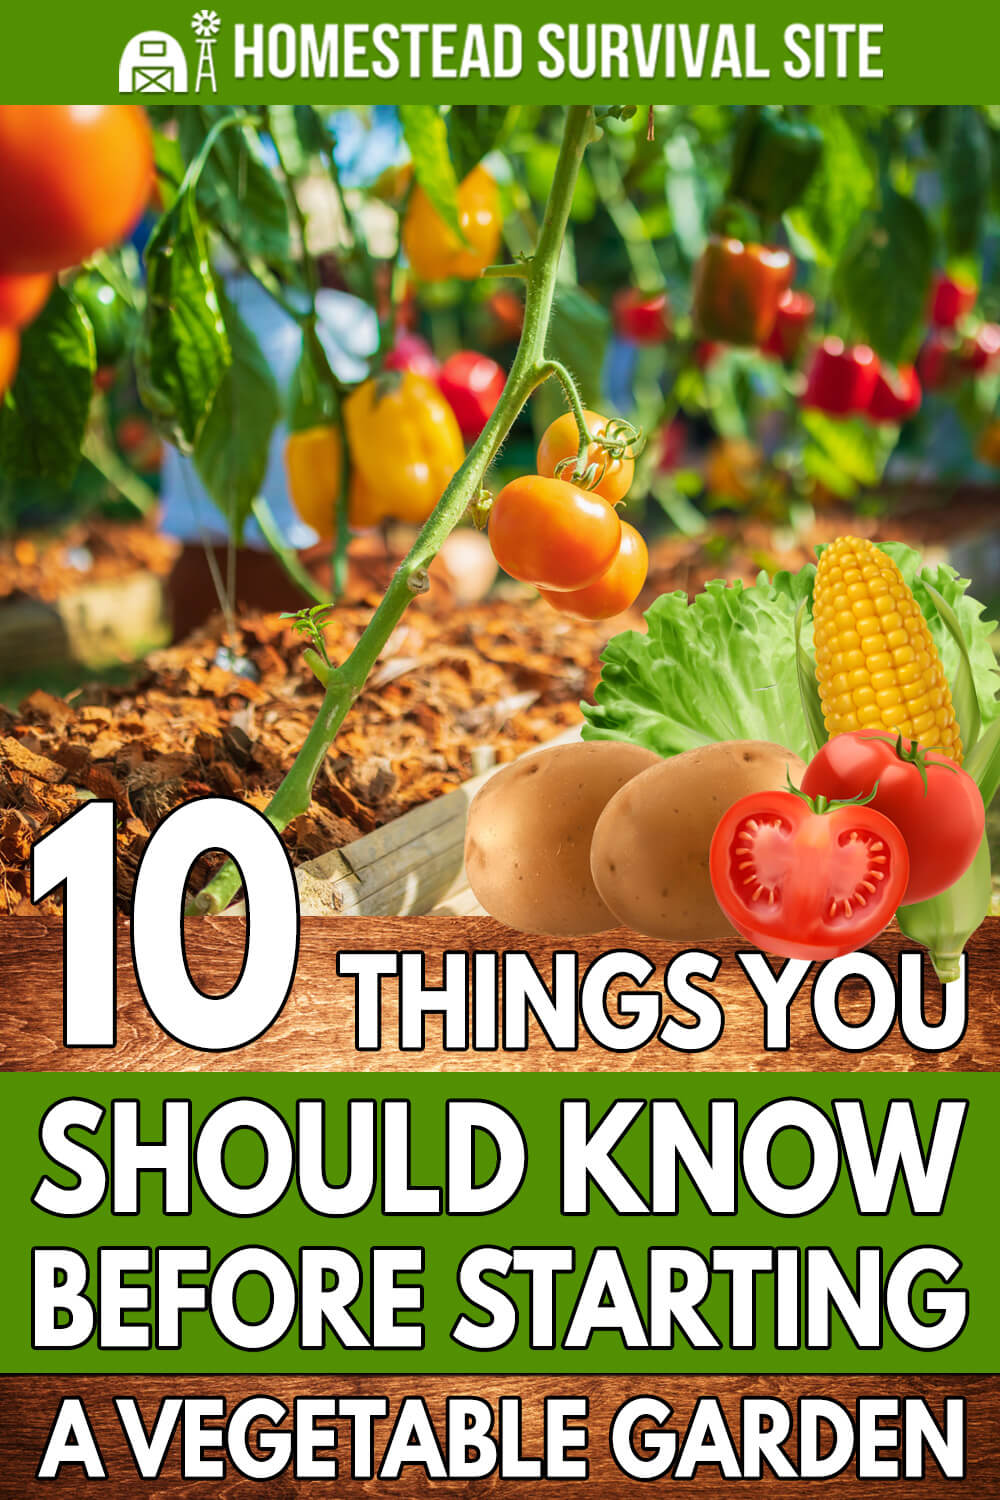 10 Things You Should Know Before Starting a Vegetable Garden